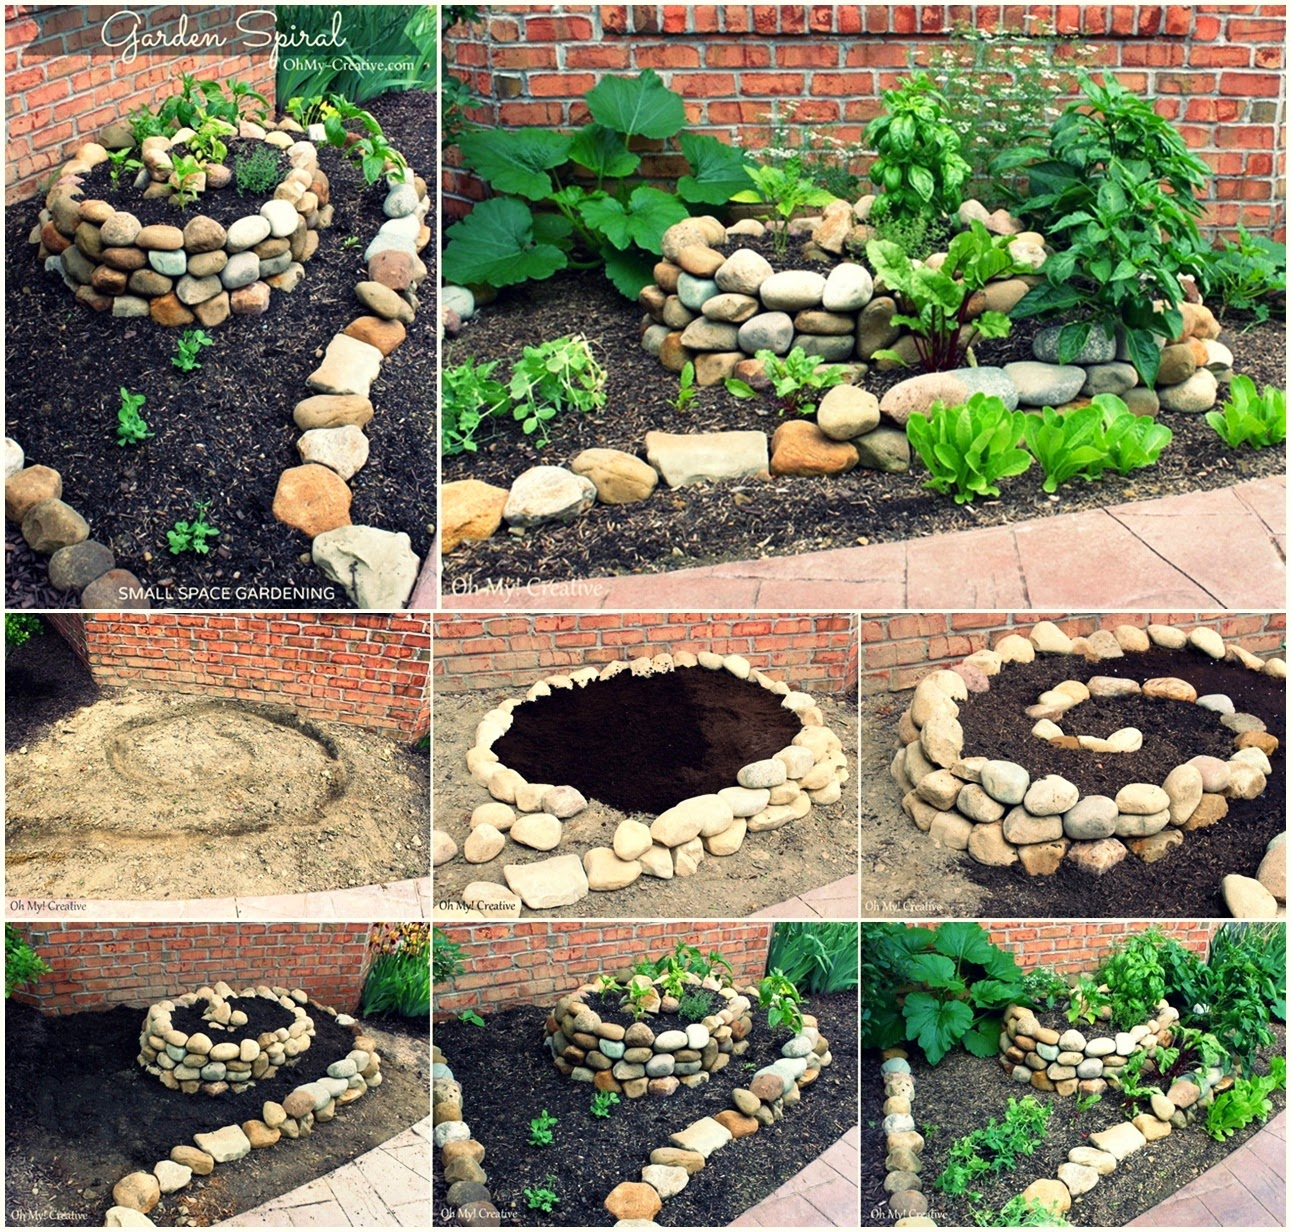 Diy create a small vegetable garden using a garden spiral for Small vegetable garden